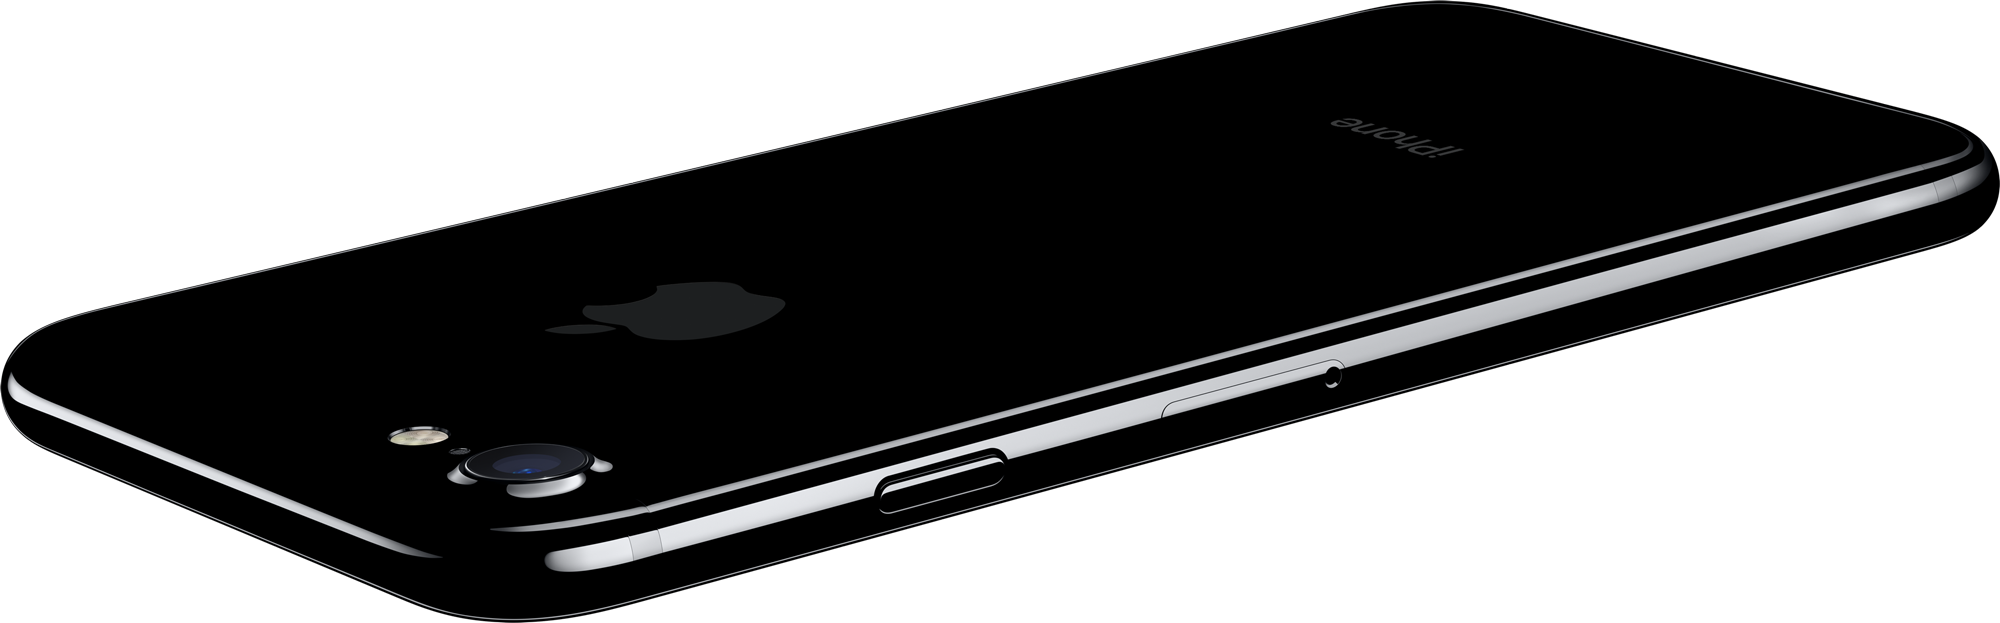 iphone7-photo-3.png